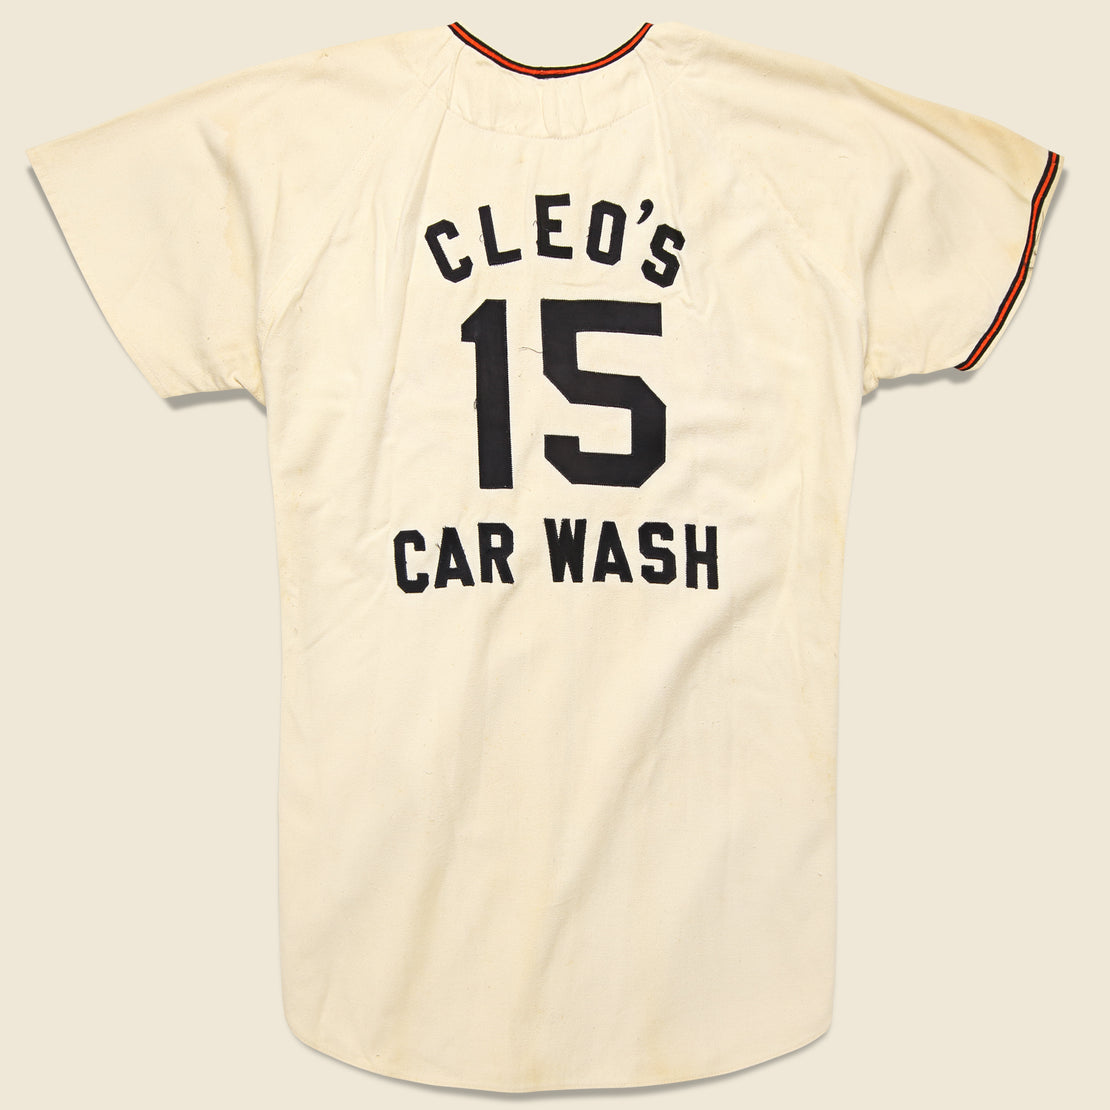 Cleo's Car Wash Zip Up Jersey - Cream